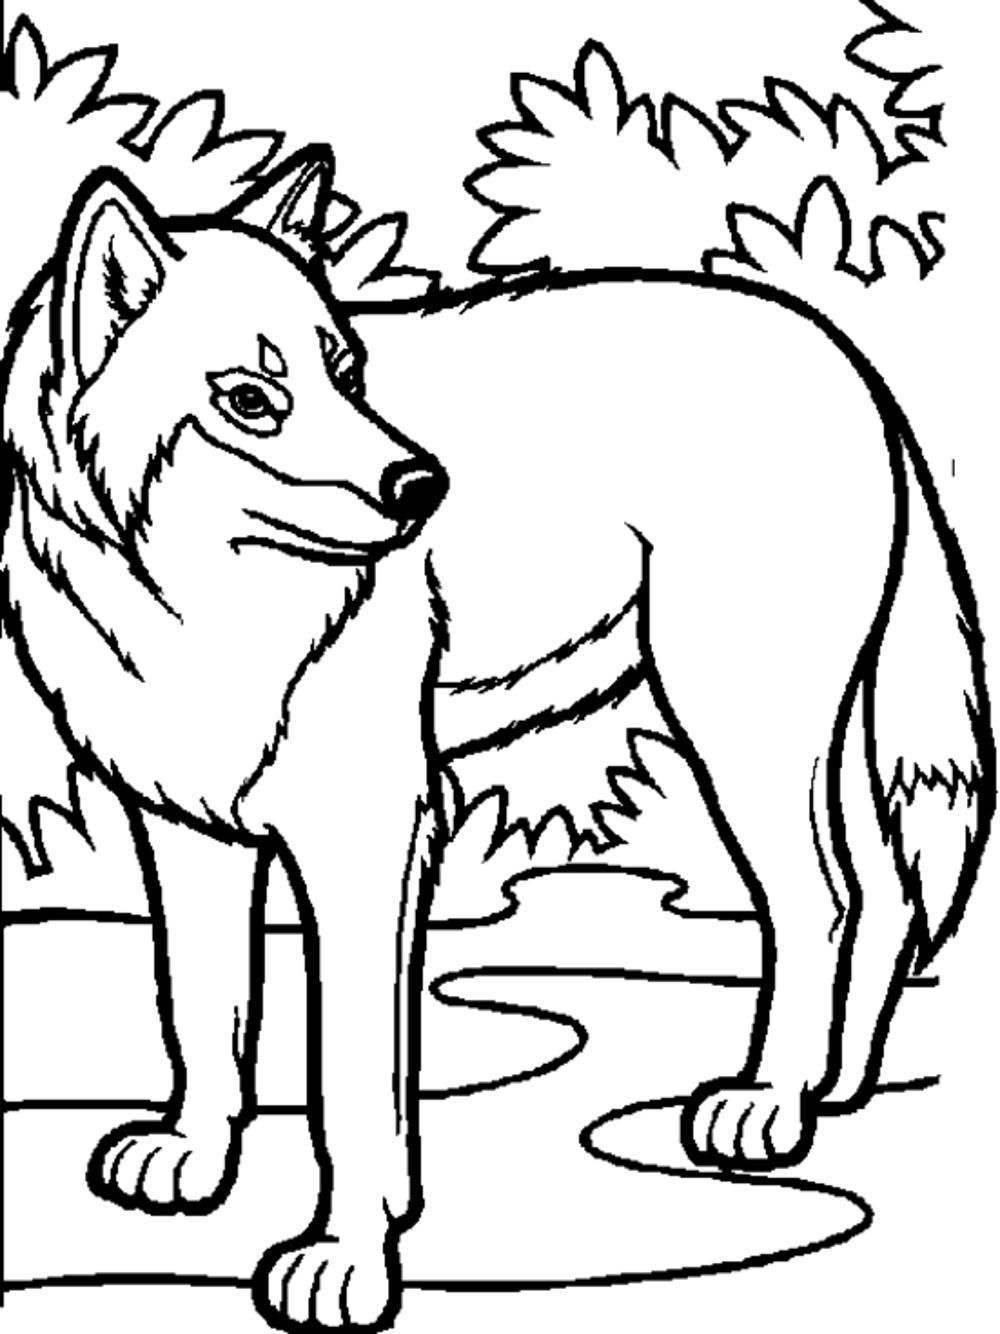 Wolf Coloring Pages Pdf : Print wolf pack team coloring pages printable realistic